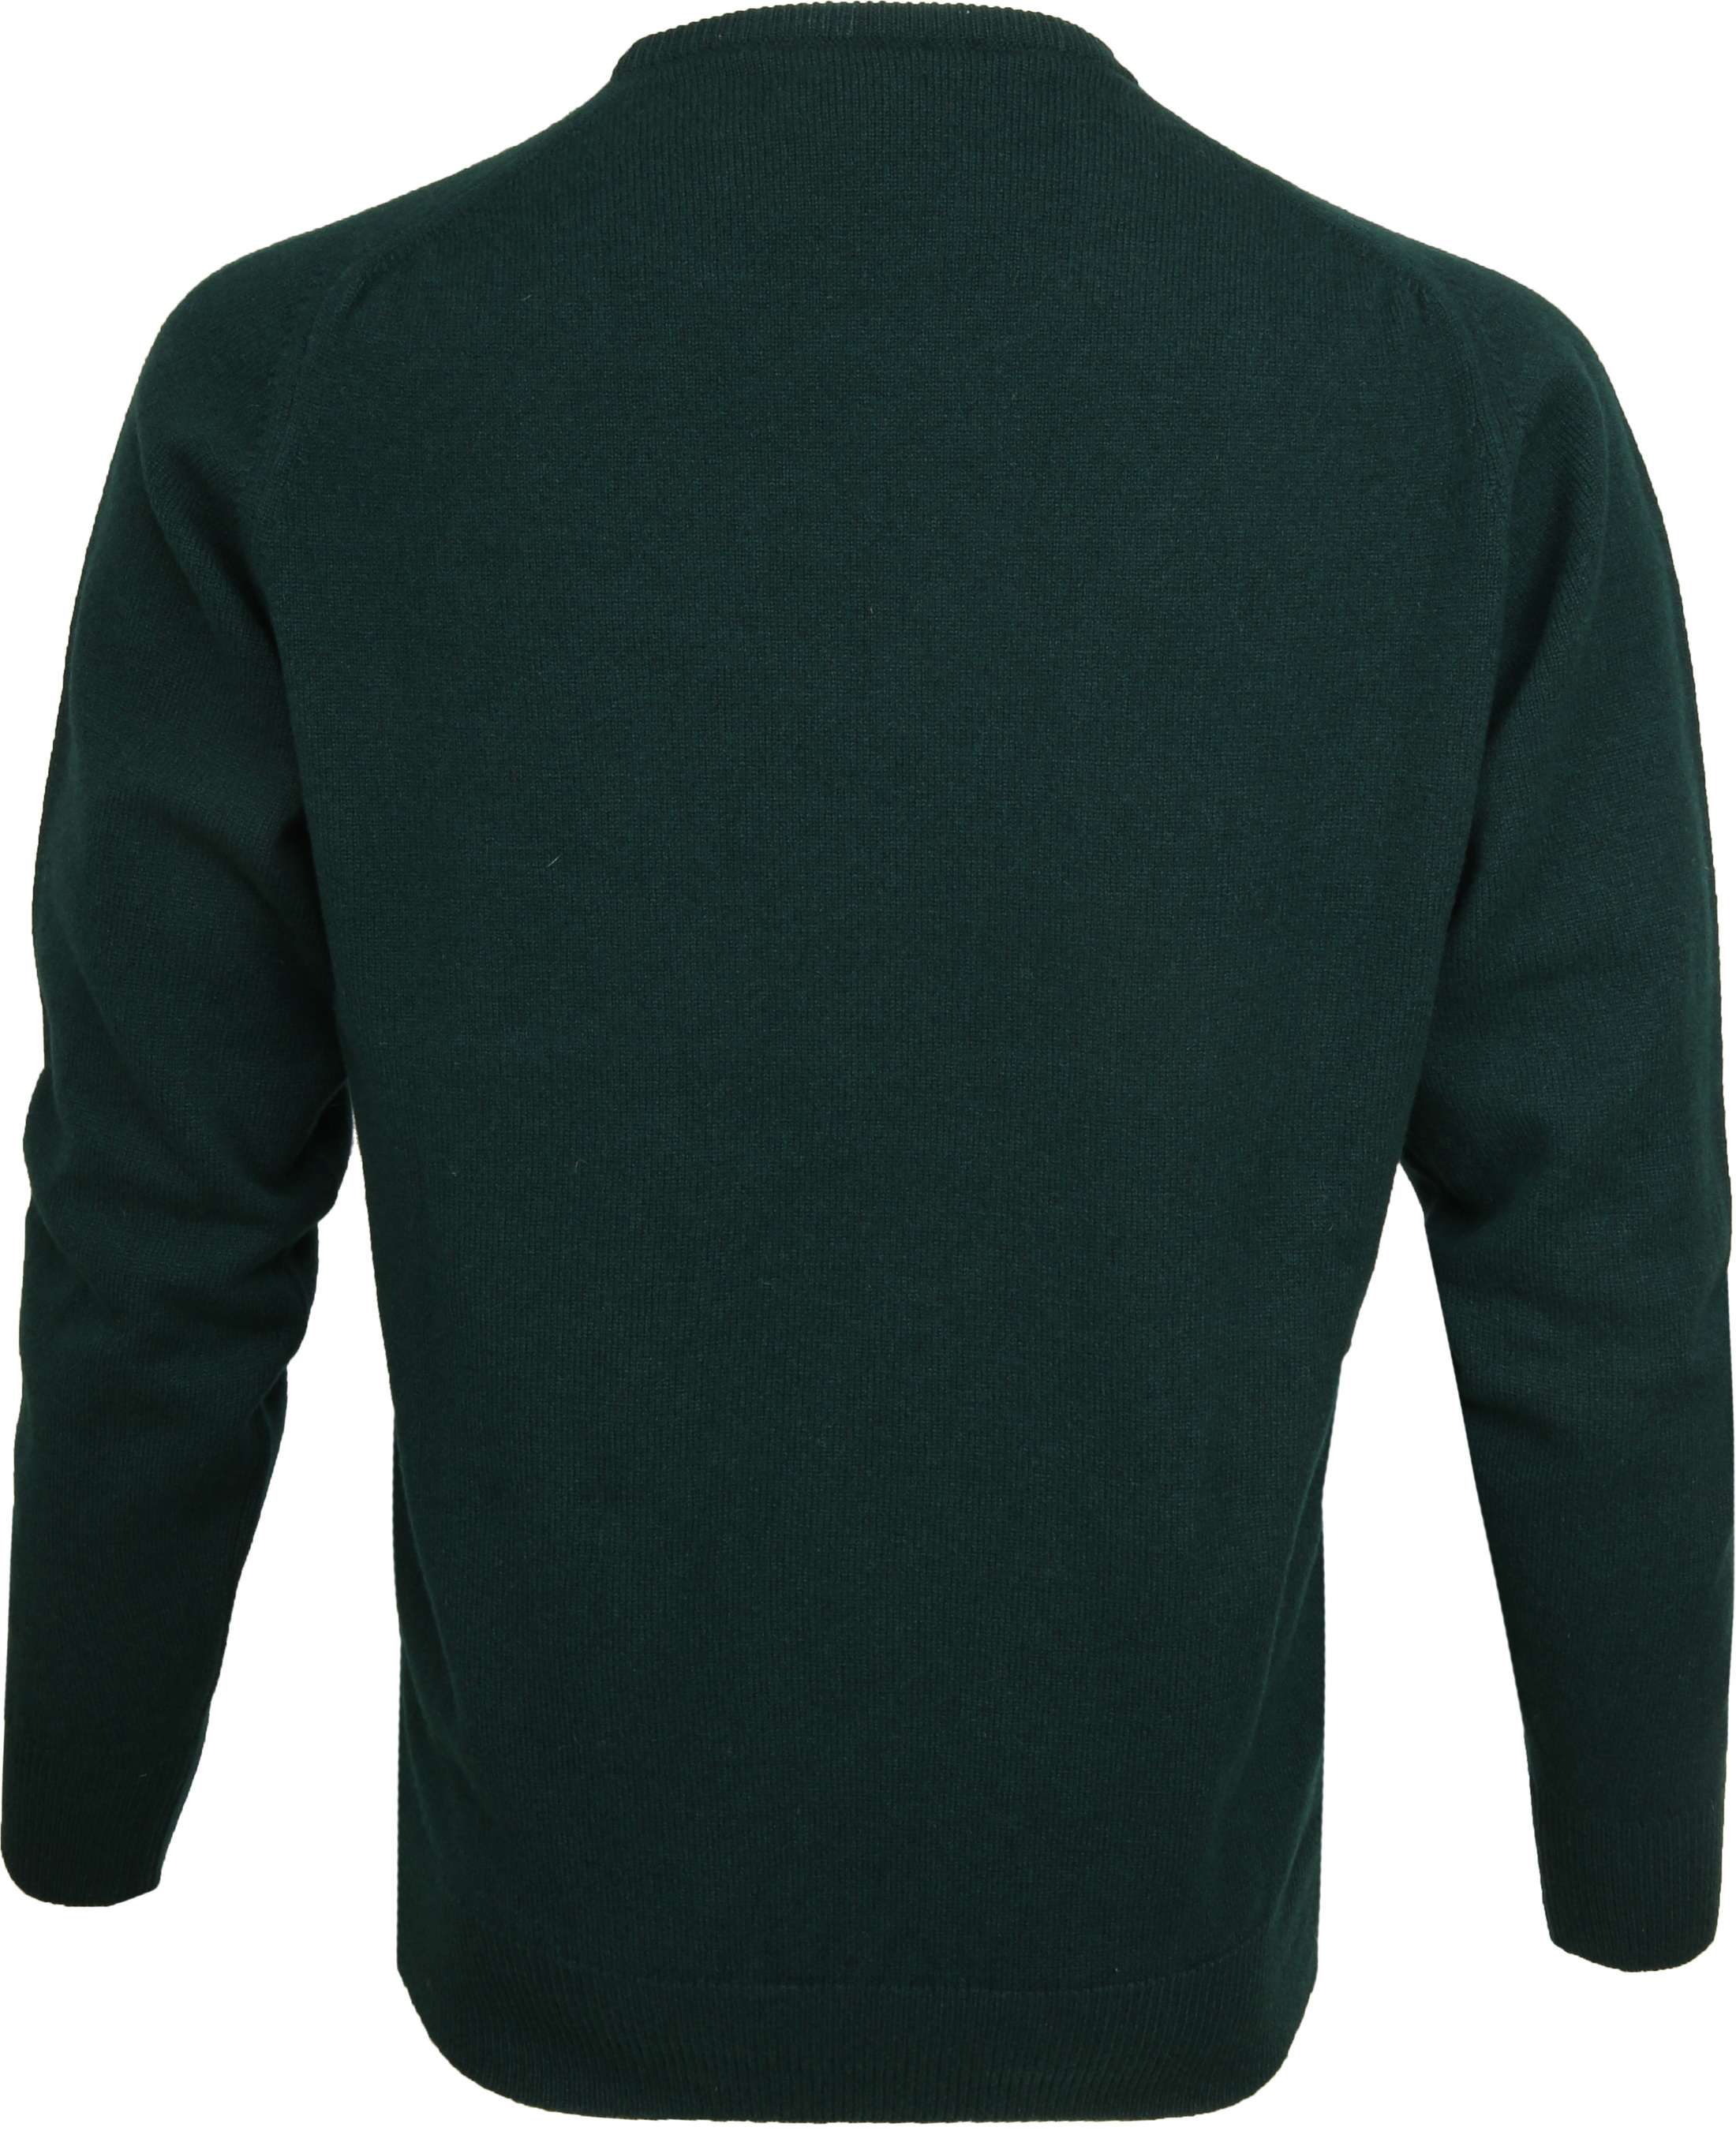 William Lockie Lambswool Green foto 2